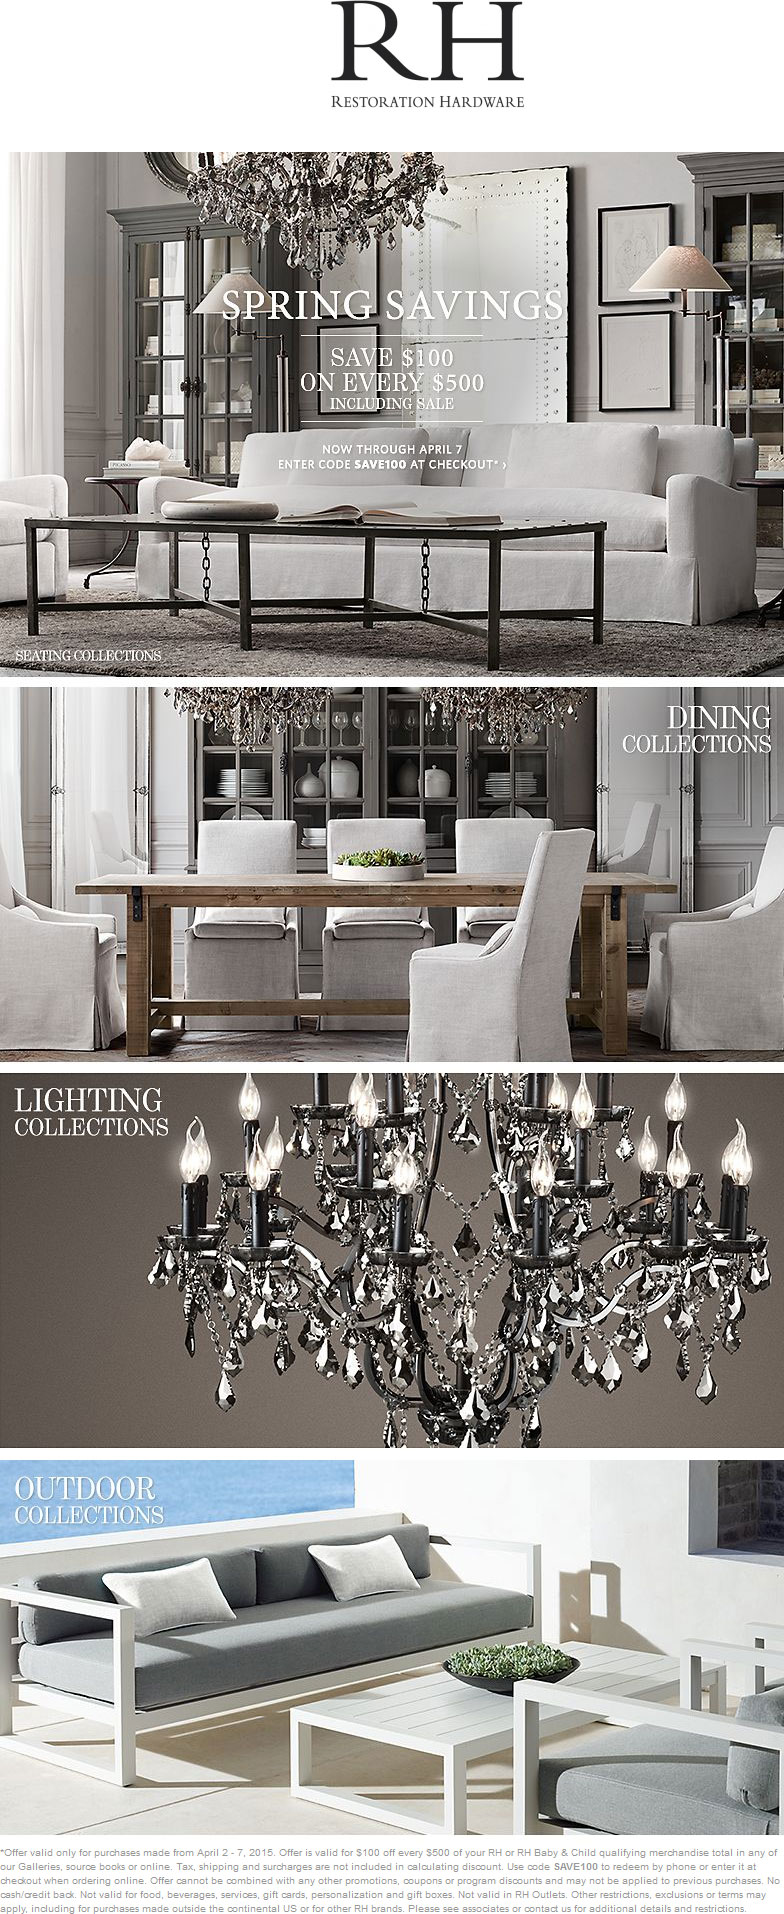 Restoration hardware lighting sale sale alerts for for When is restoration hardware lighting sale